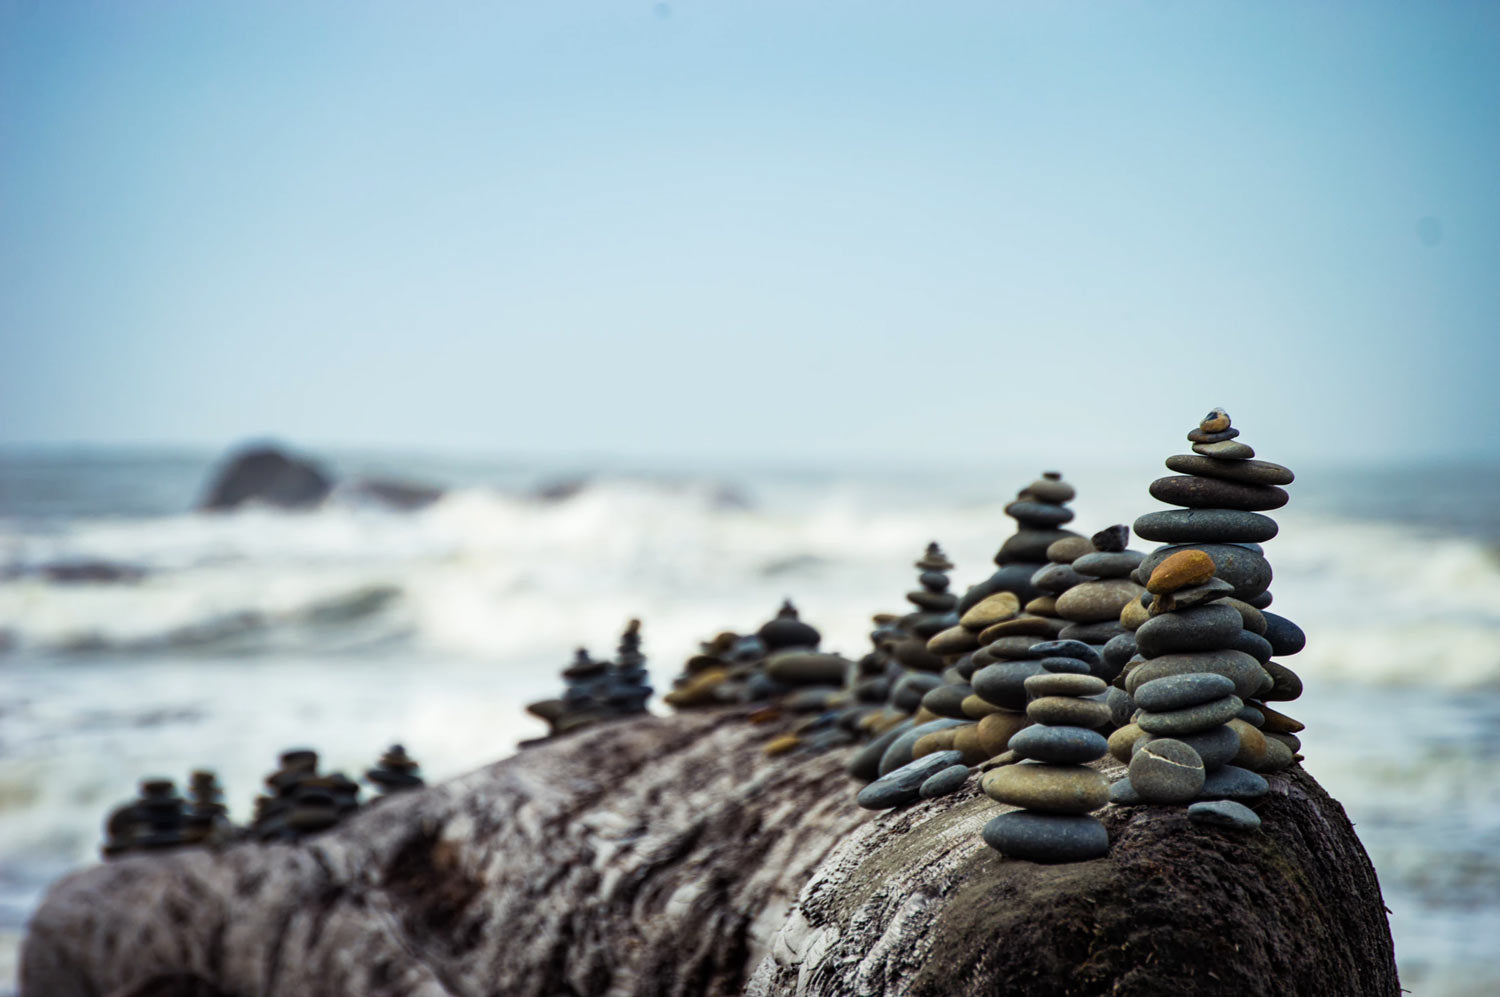 Rocks piled on a beach